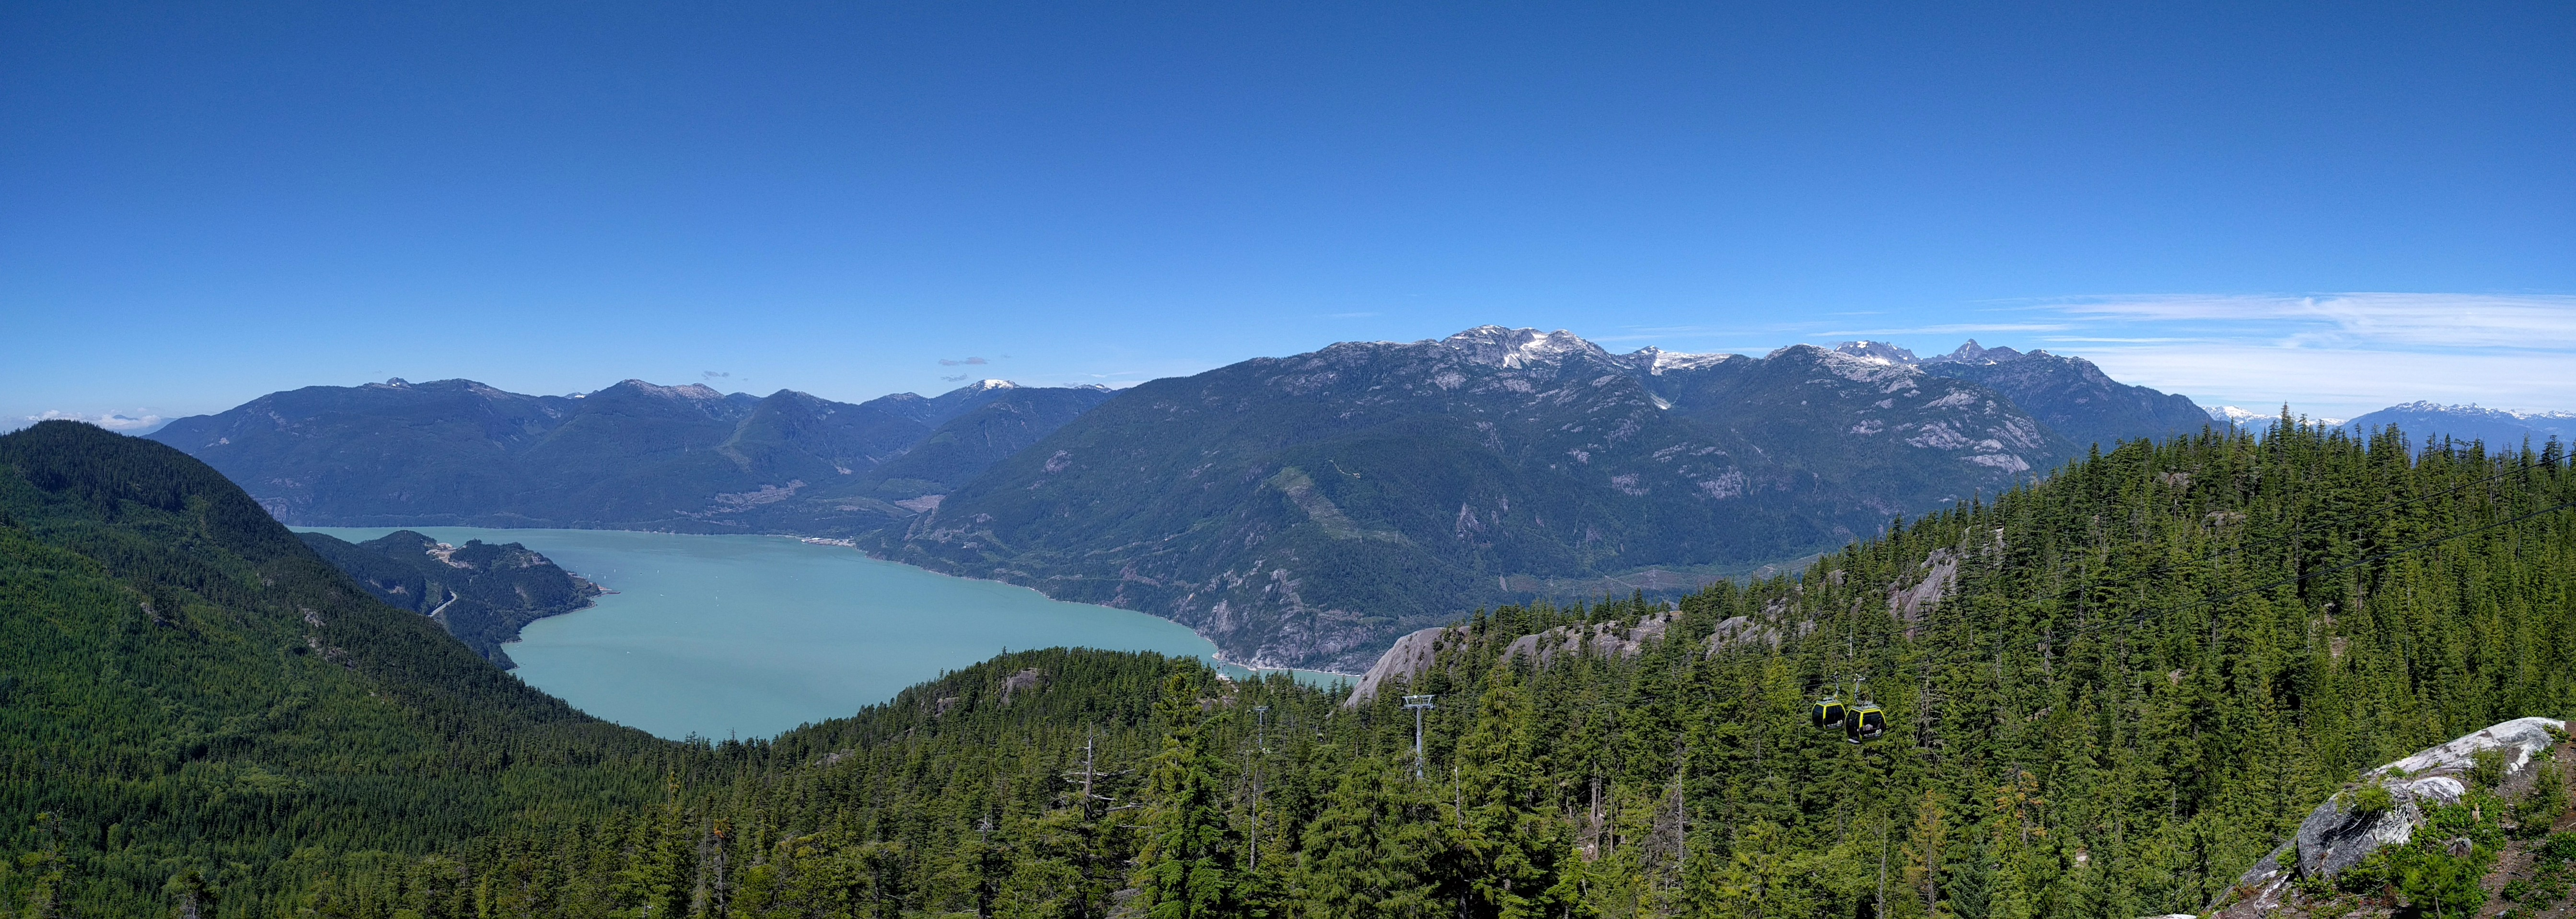 View at the top of the Sea to Sky Gondola